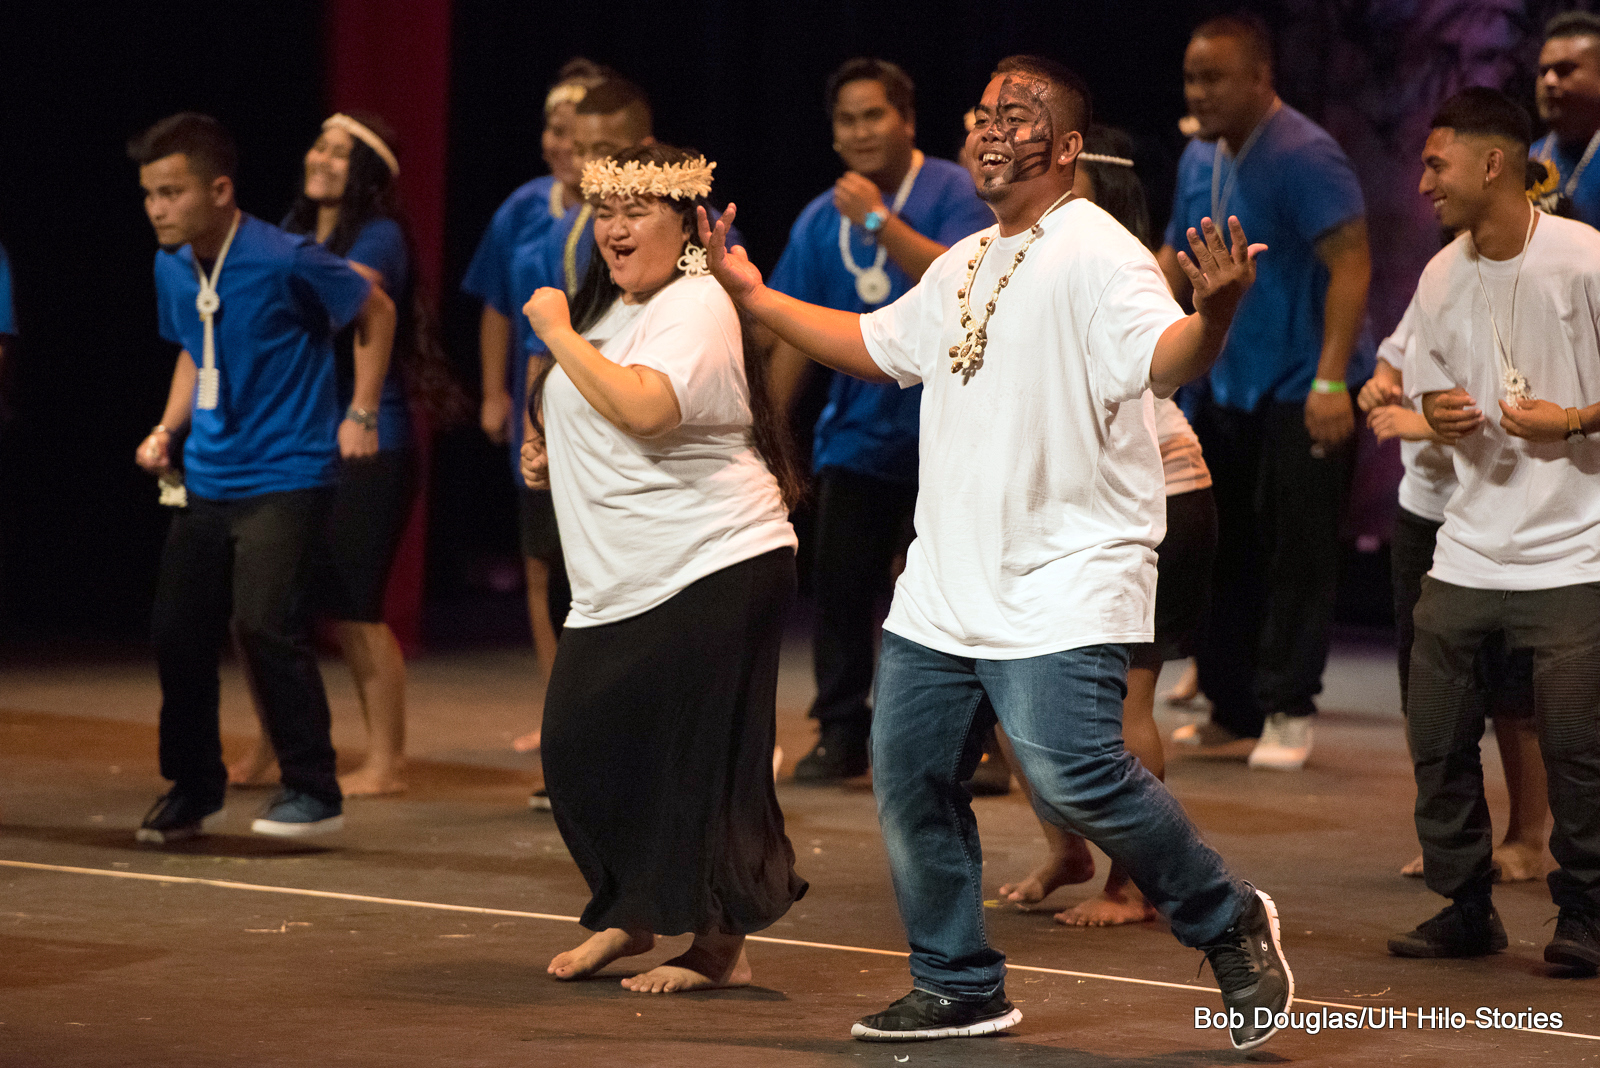 In background is group of women and men in blue shirts and black pants. In front is couple with white shirts dancing, man has arms extended out, woman is smiling with hand gesturing toward herself. He has a tattoo on his face, she has shell or flower head ornaments.